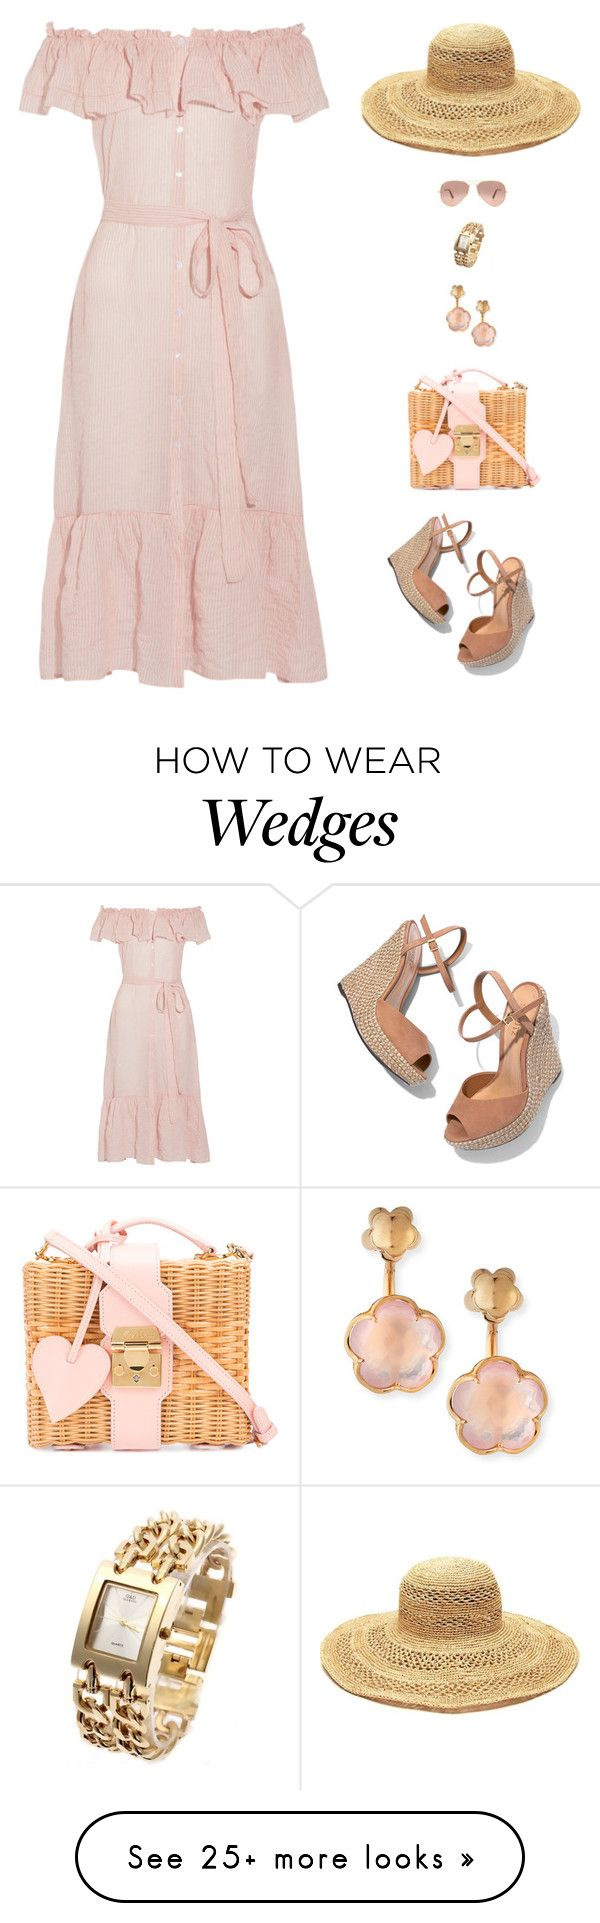 """Pink lady"" by candynena228 on Polyvore featuring Lisa Marie Fernandez, Schutz, Mark Cross, Pasquale Bruni, Ray-Ban and Mar y Sol"